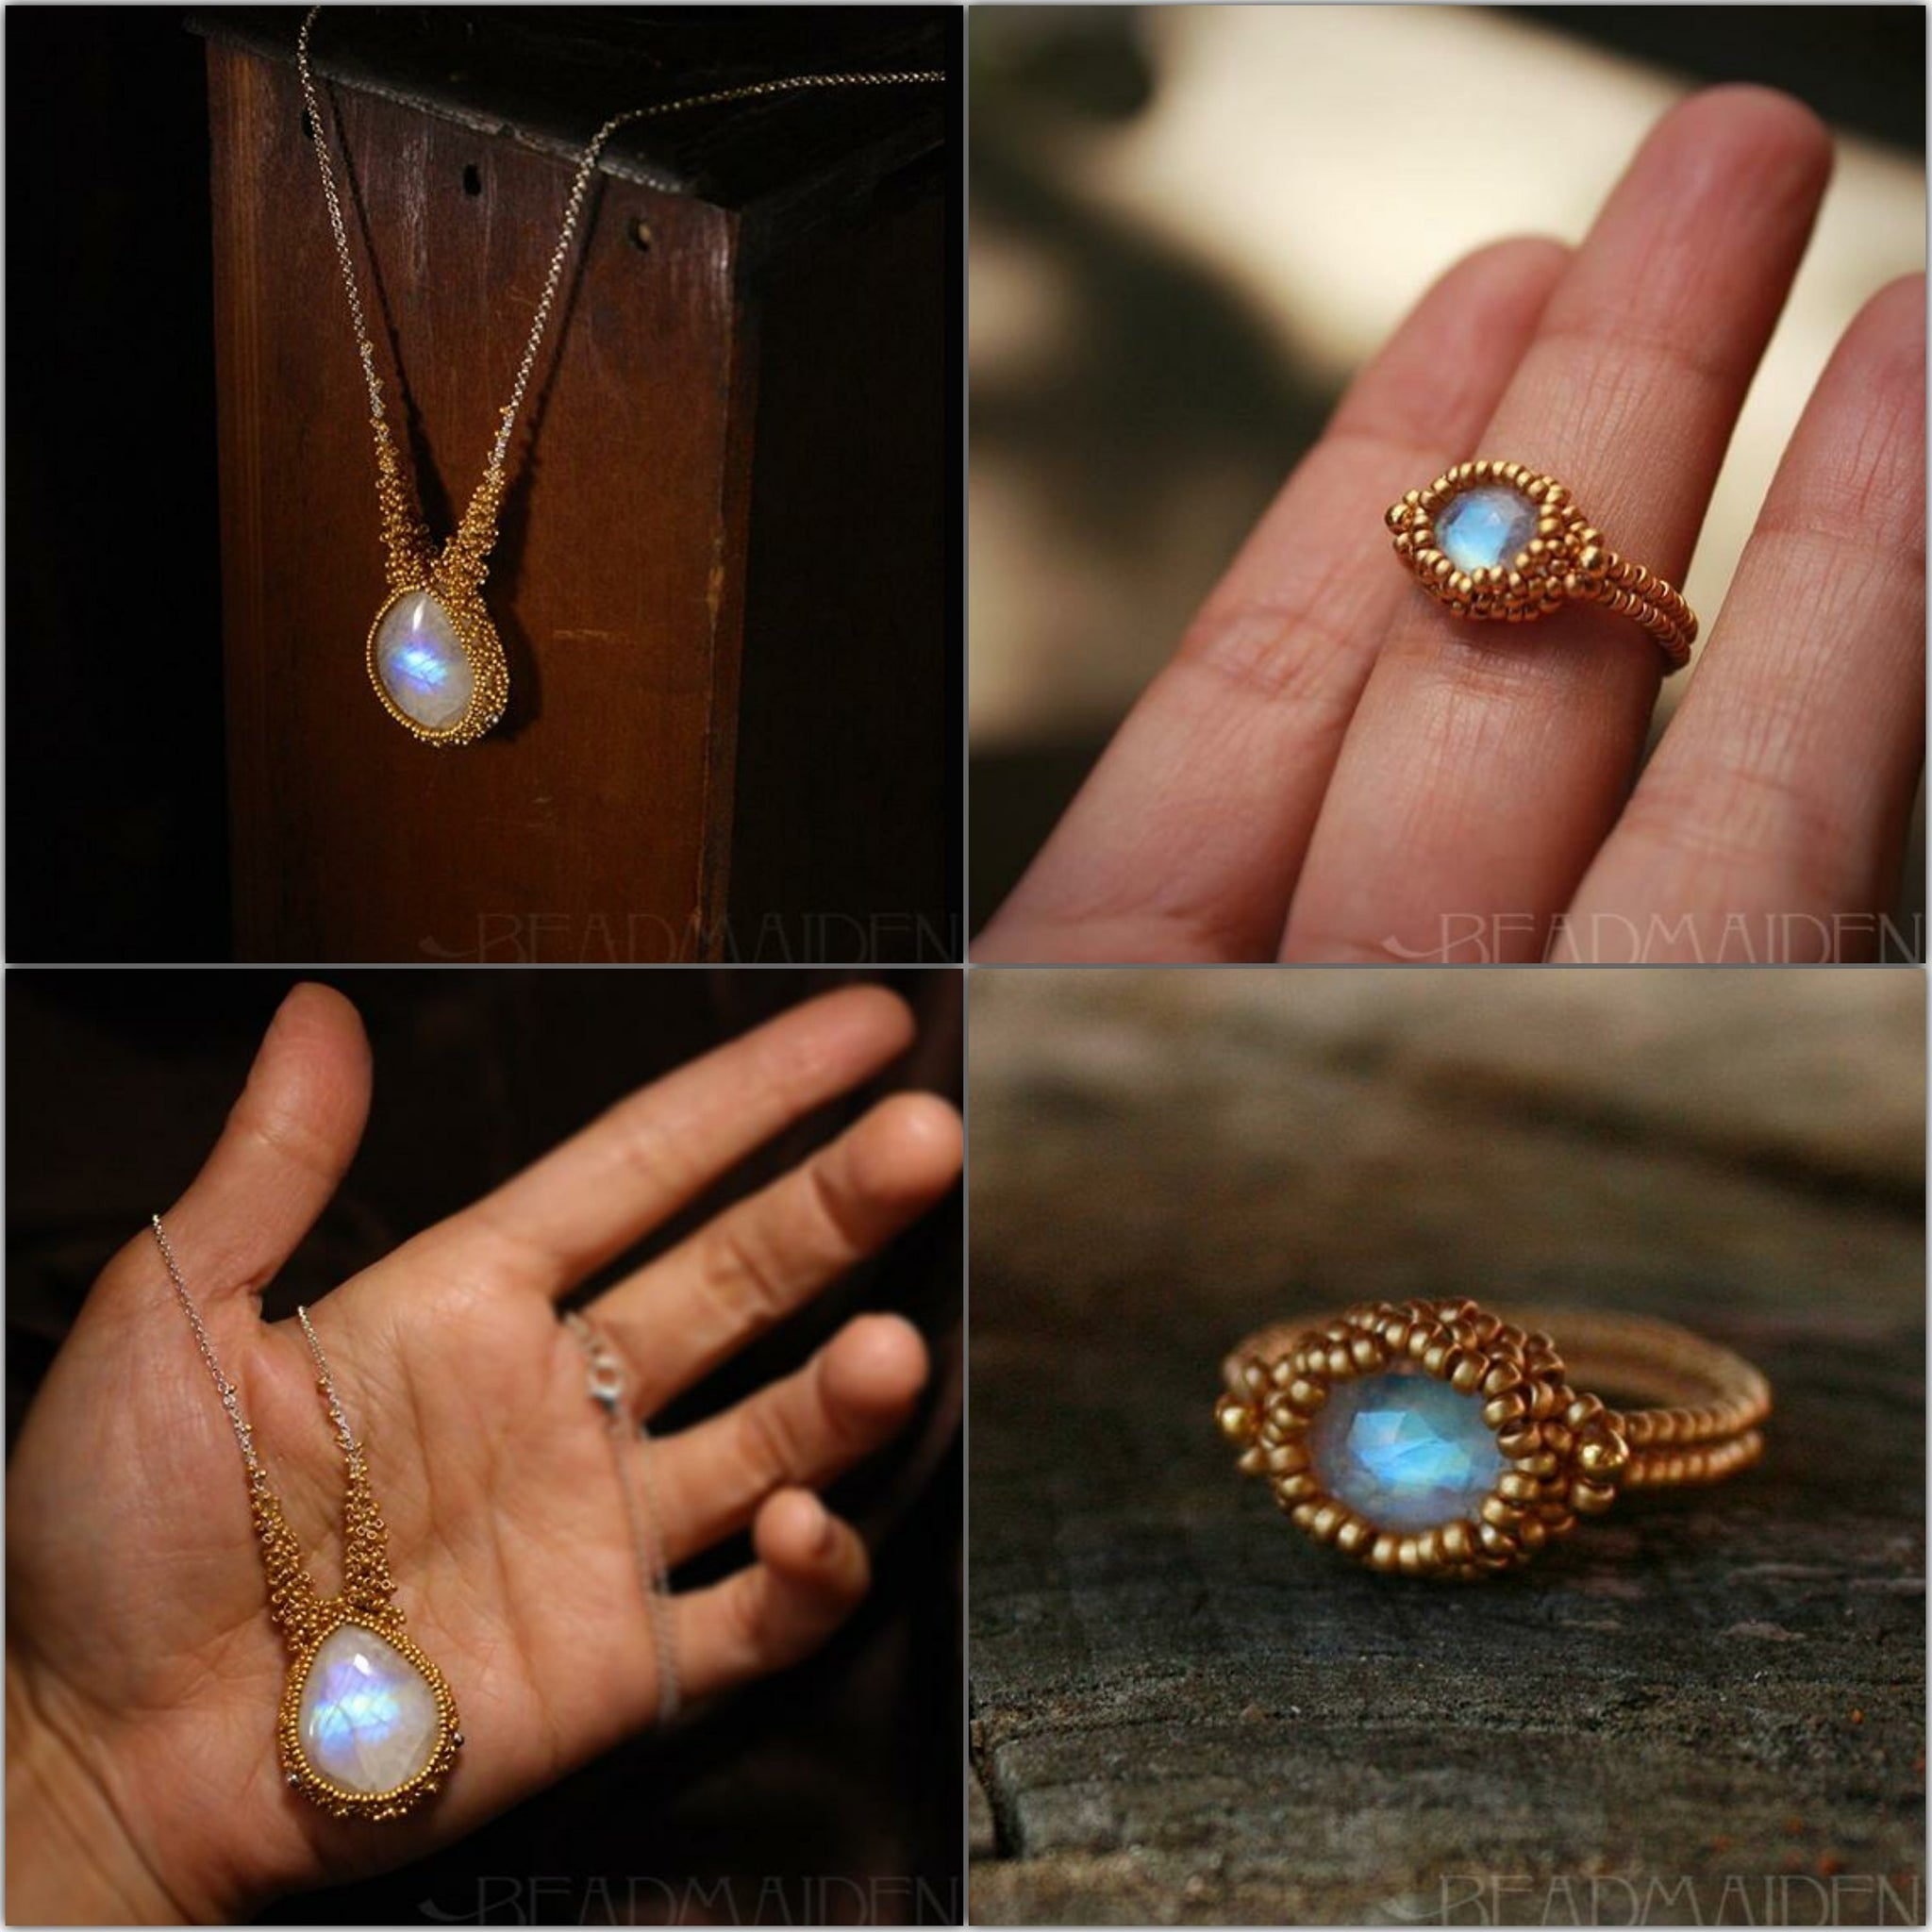 Rainbow Moonstone ring and necklace set in 24k and 18k gold.